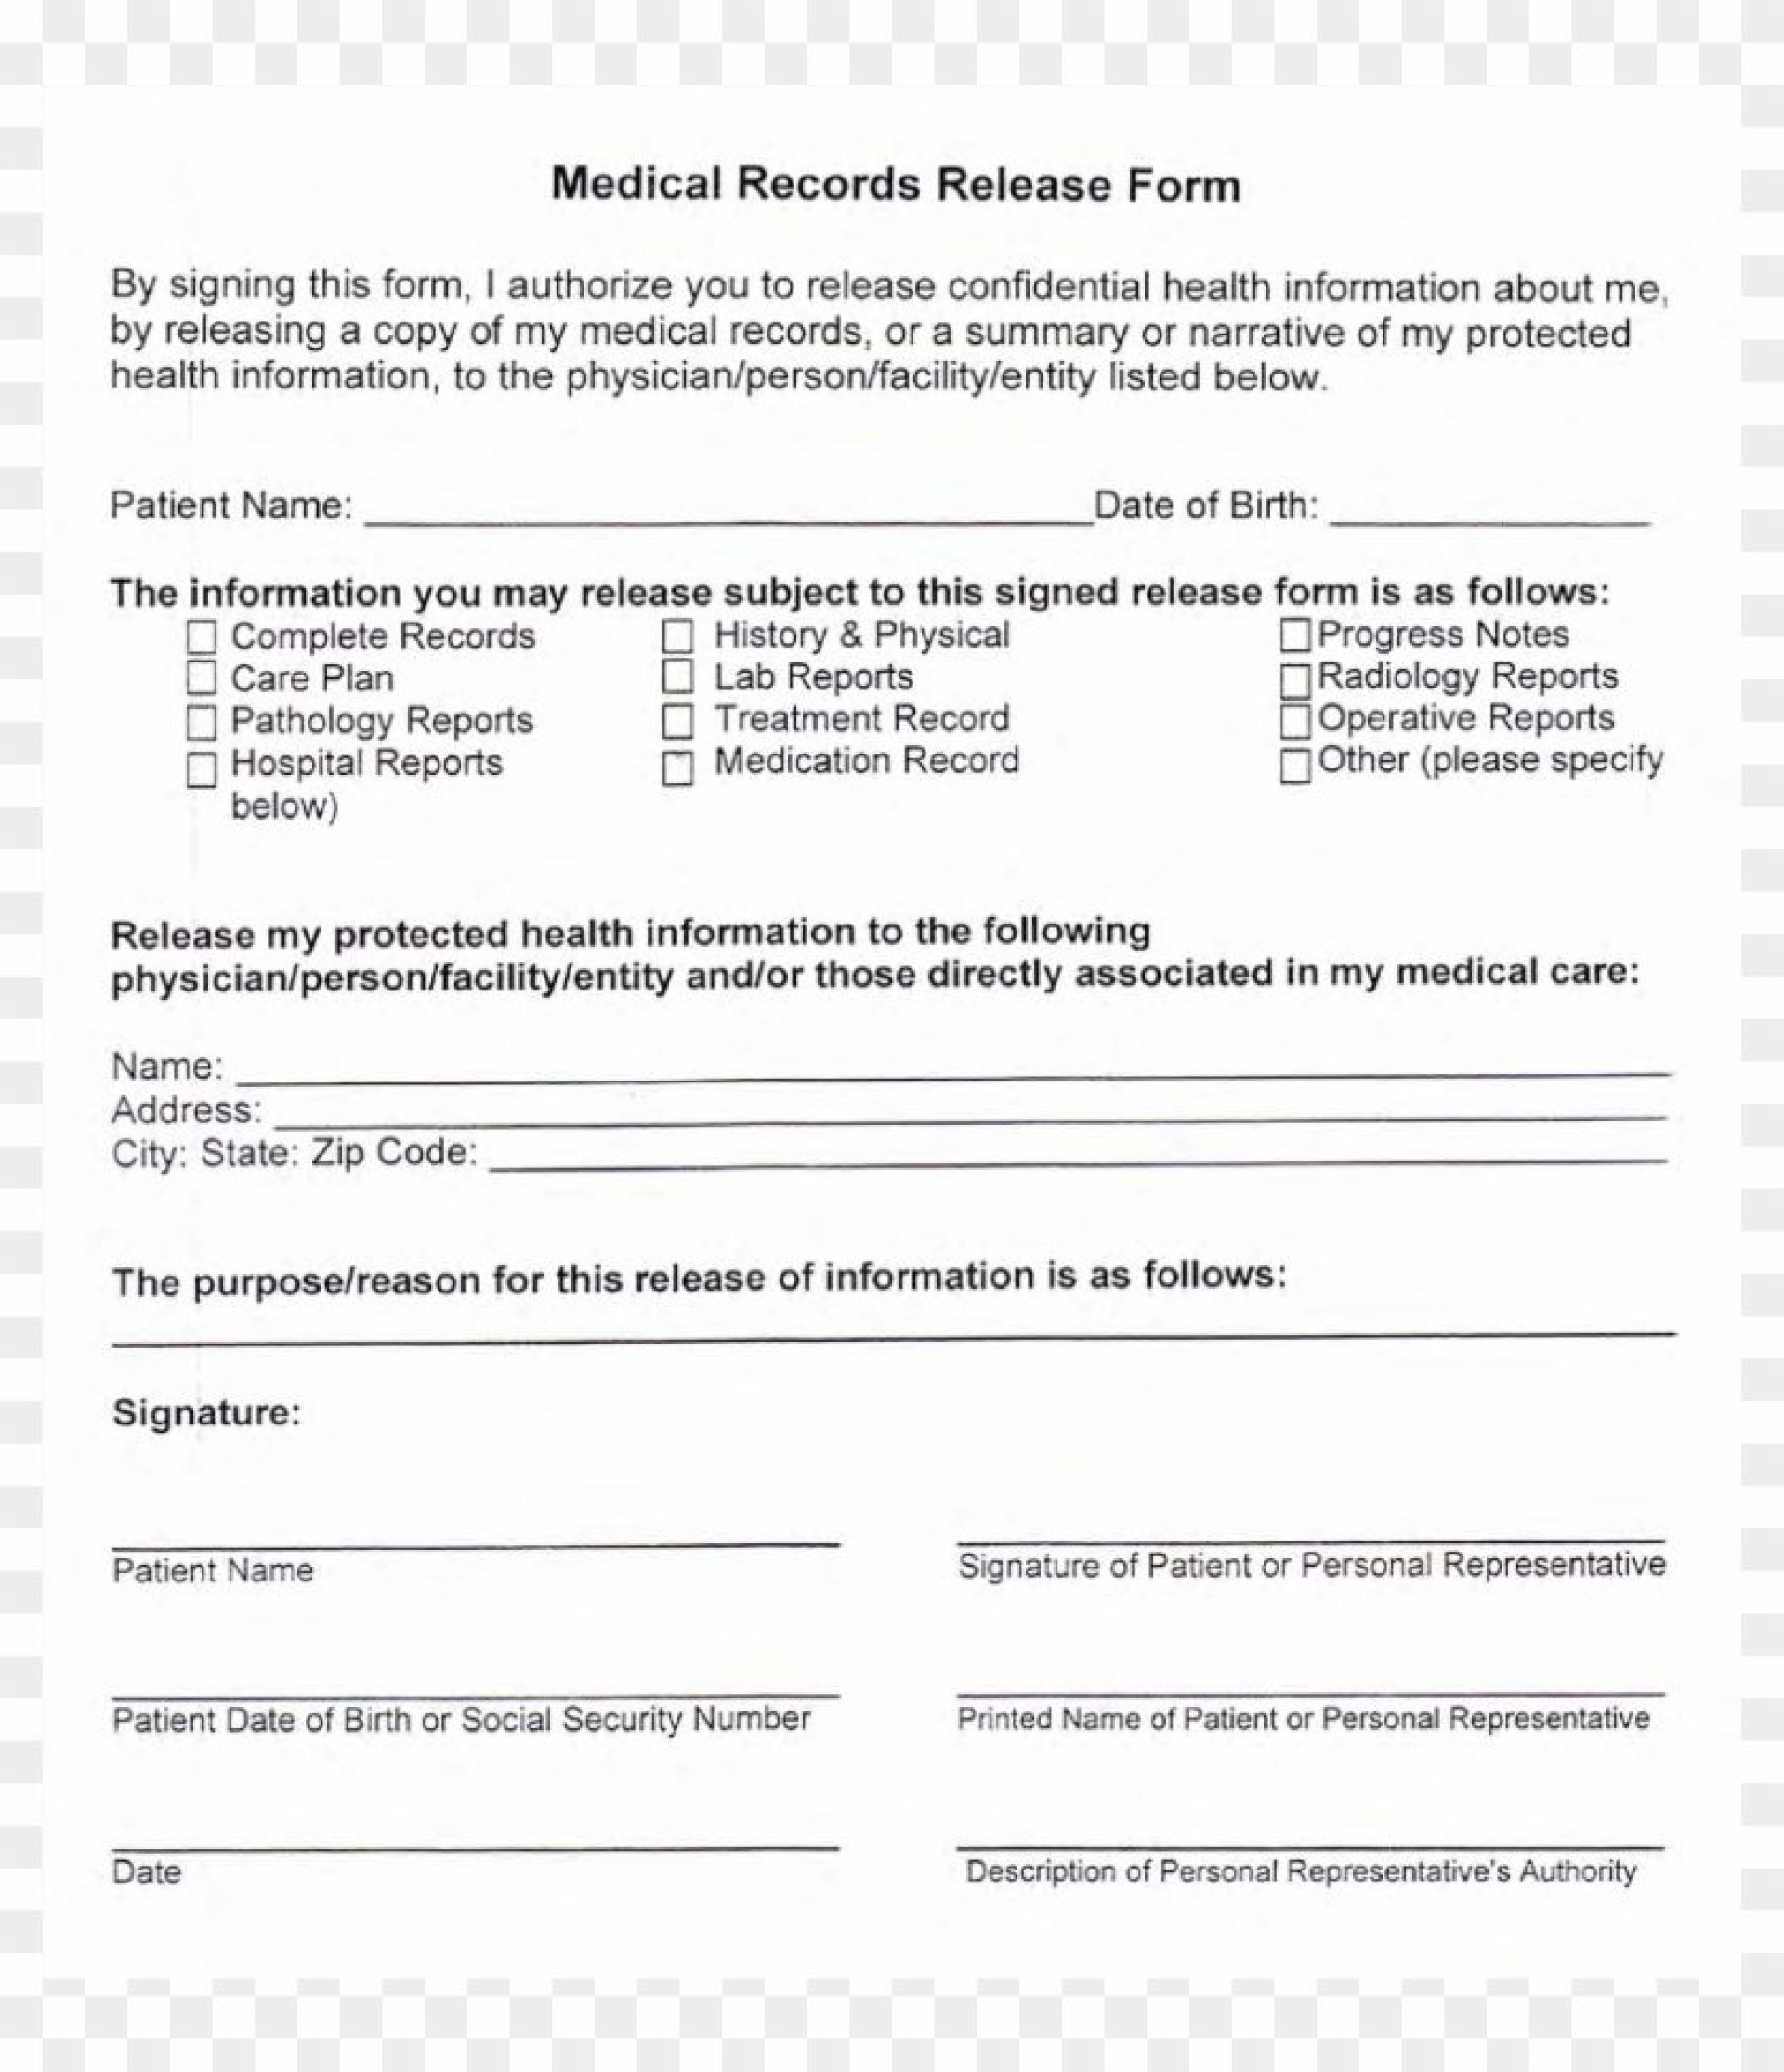 002 Breathtaking Medical Record Release Form Template Concept  Request Free Personal1920